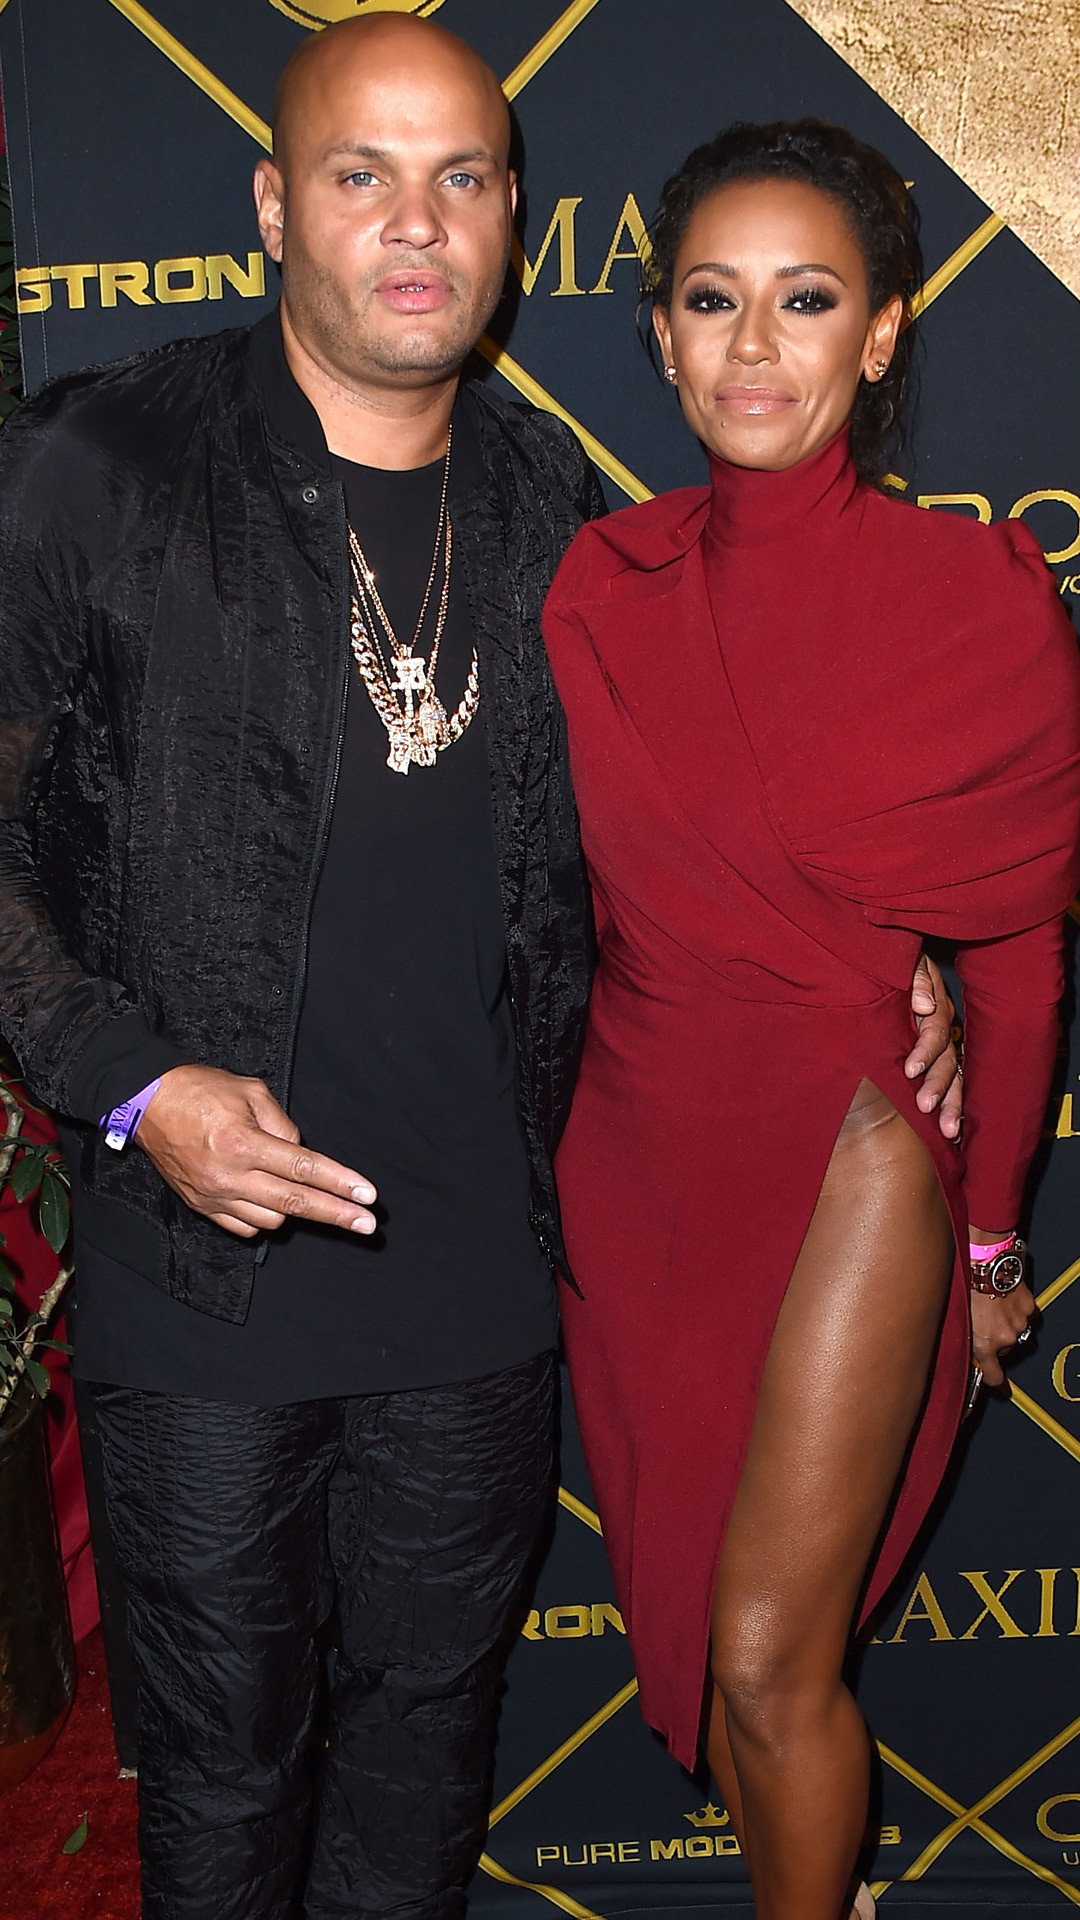 Mel B Ordered to Complete Random Drug and Alcohol Tests as